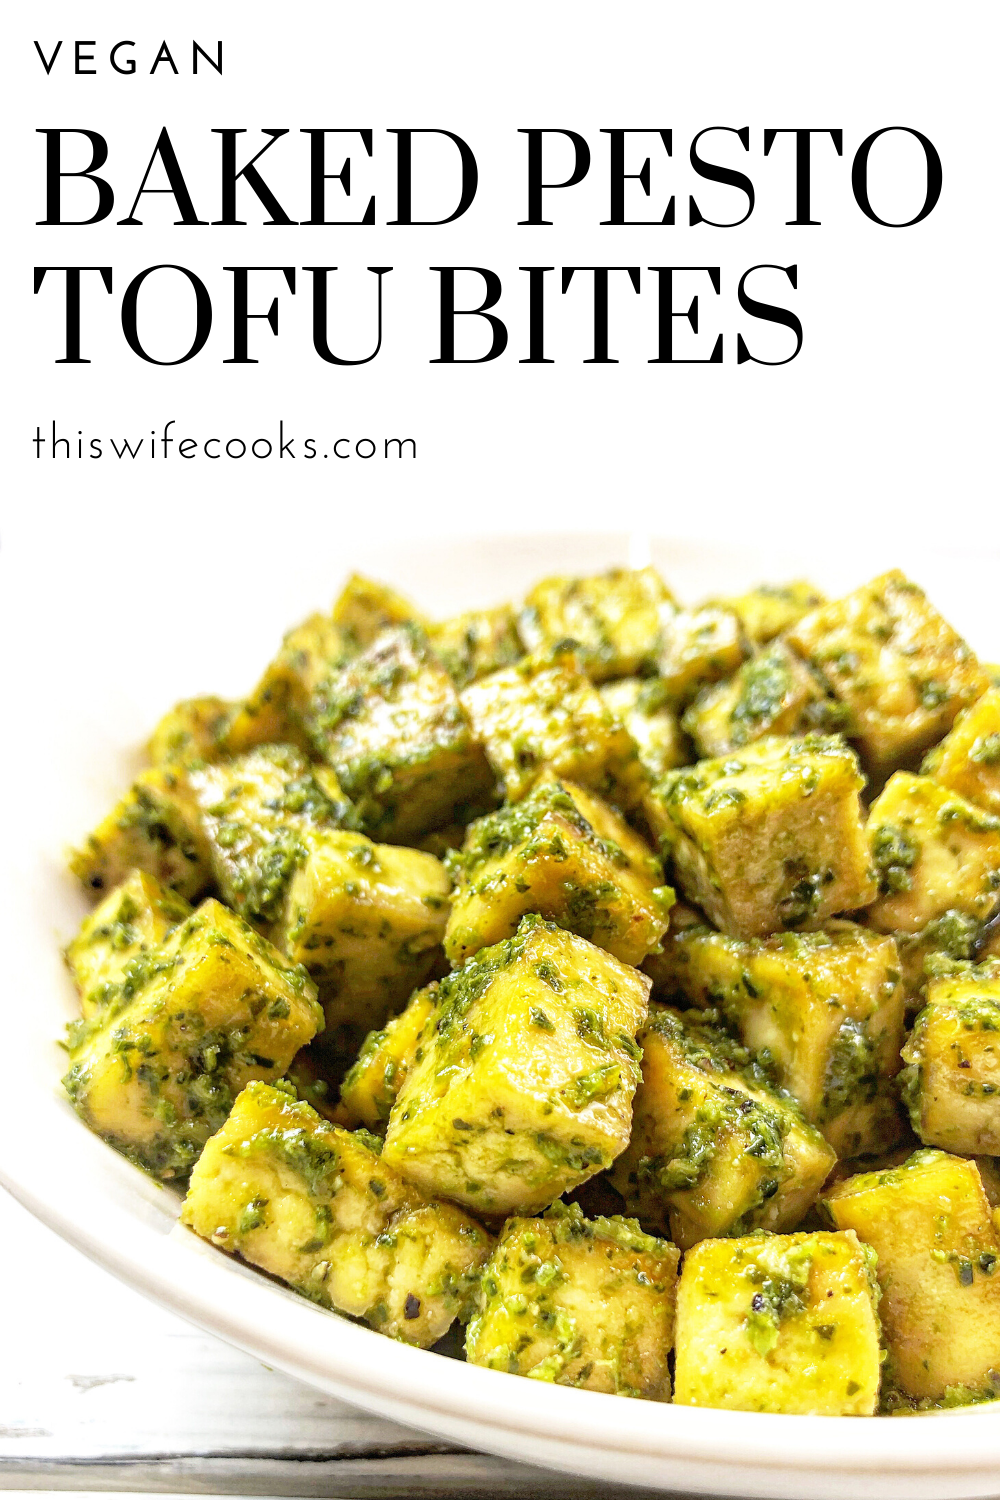 Baked Pesto Tofu - Basil pesto is tossed with tofu that has been seasoned and roasted with simple spices for a savory dish that is practically effortless. via @thiswifecooks